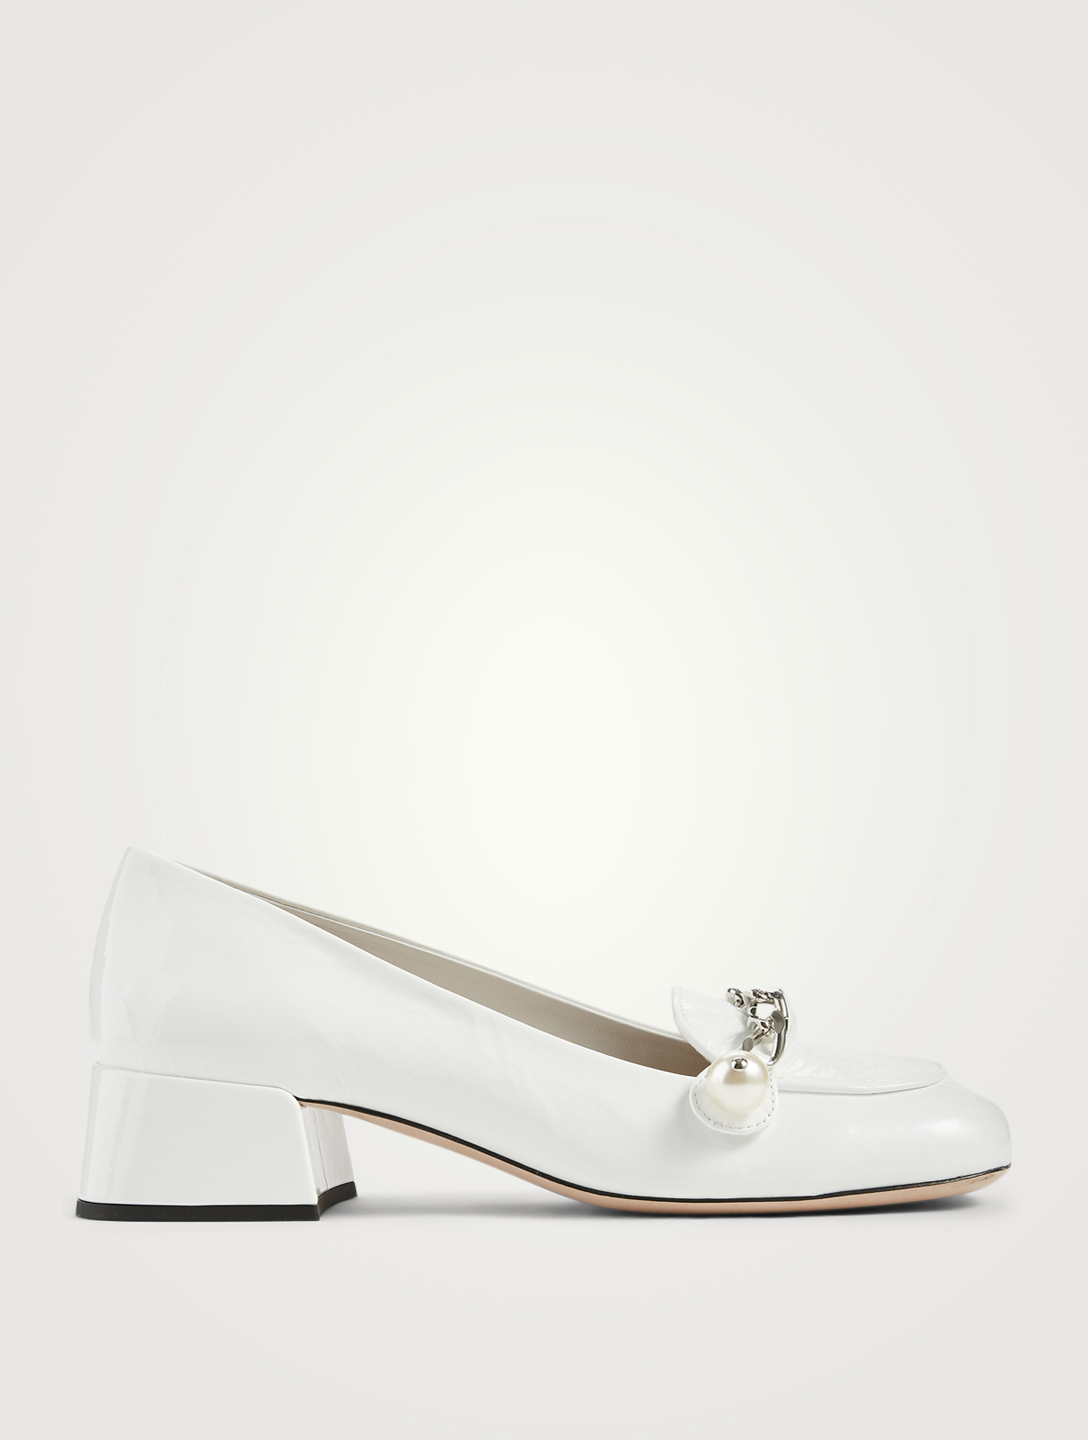 MIU MIU Patent Leather Heeled Loafers With Chain Strap Women's White